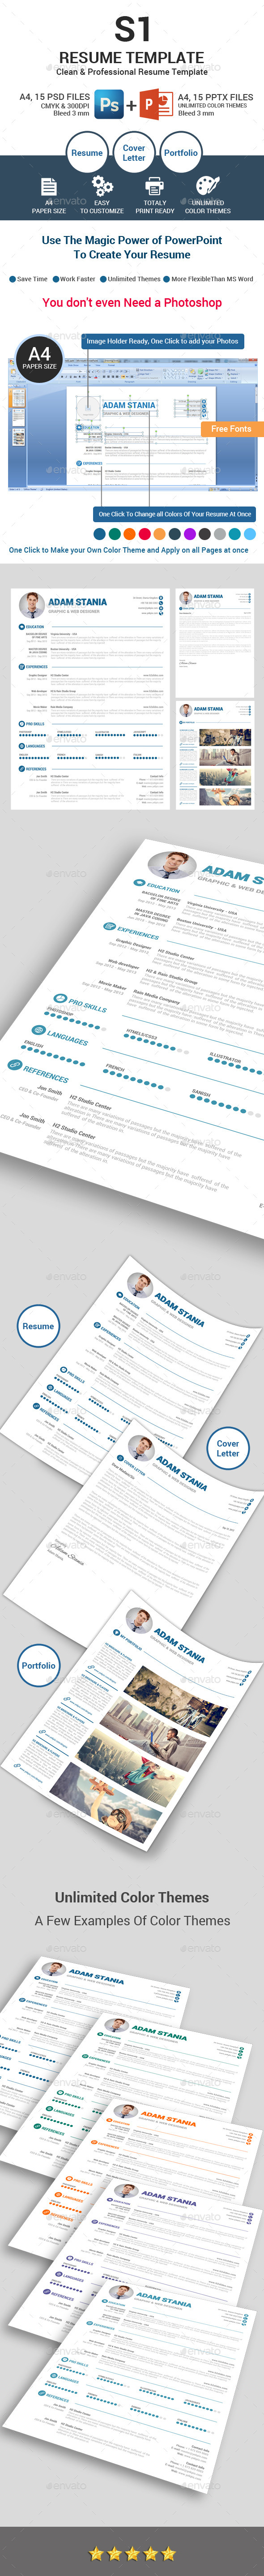 GraphicRiver S1 Clean Resume Template 11877697